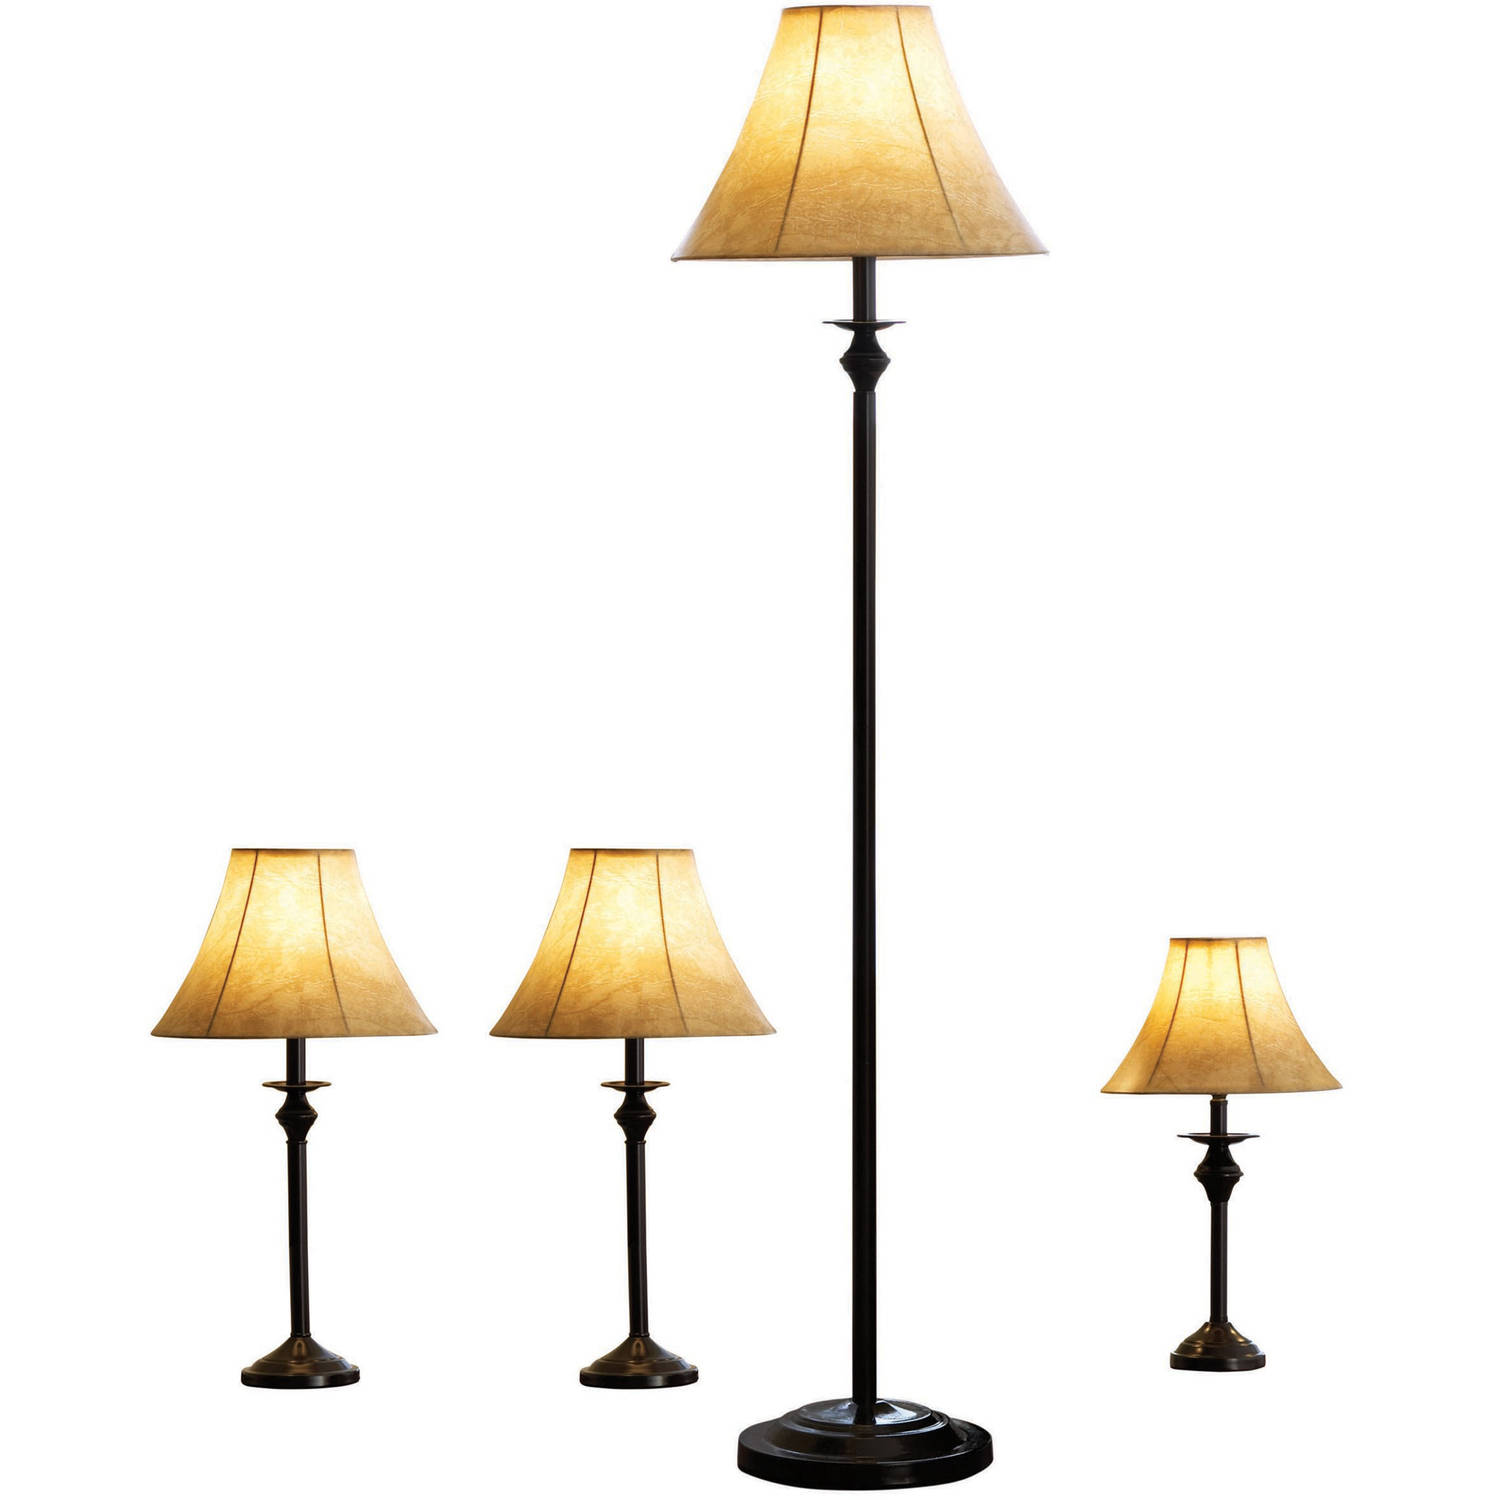 Lamp Sets Walmartcom - Bedroom lamps at walmart